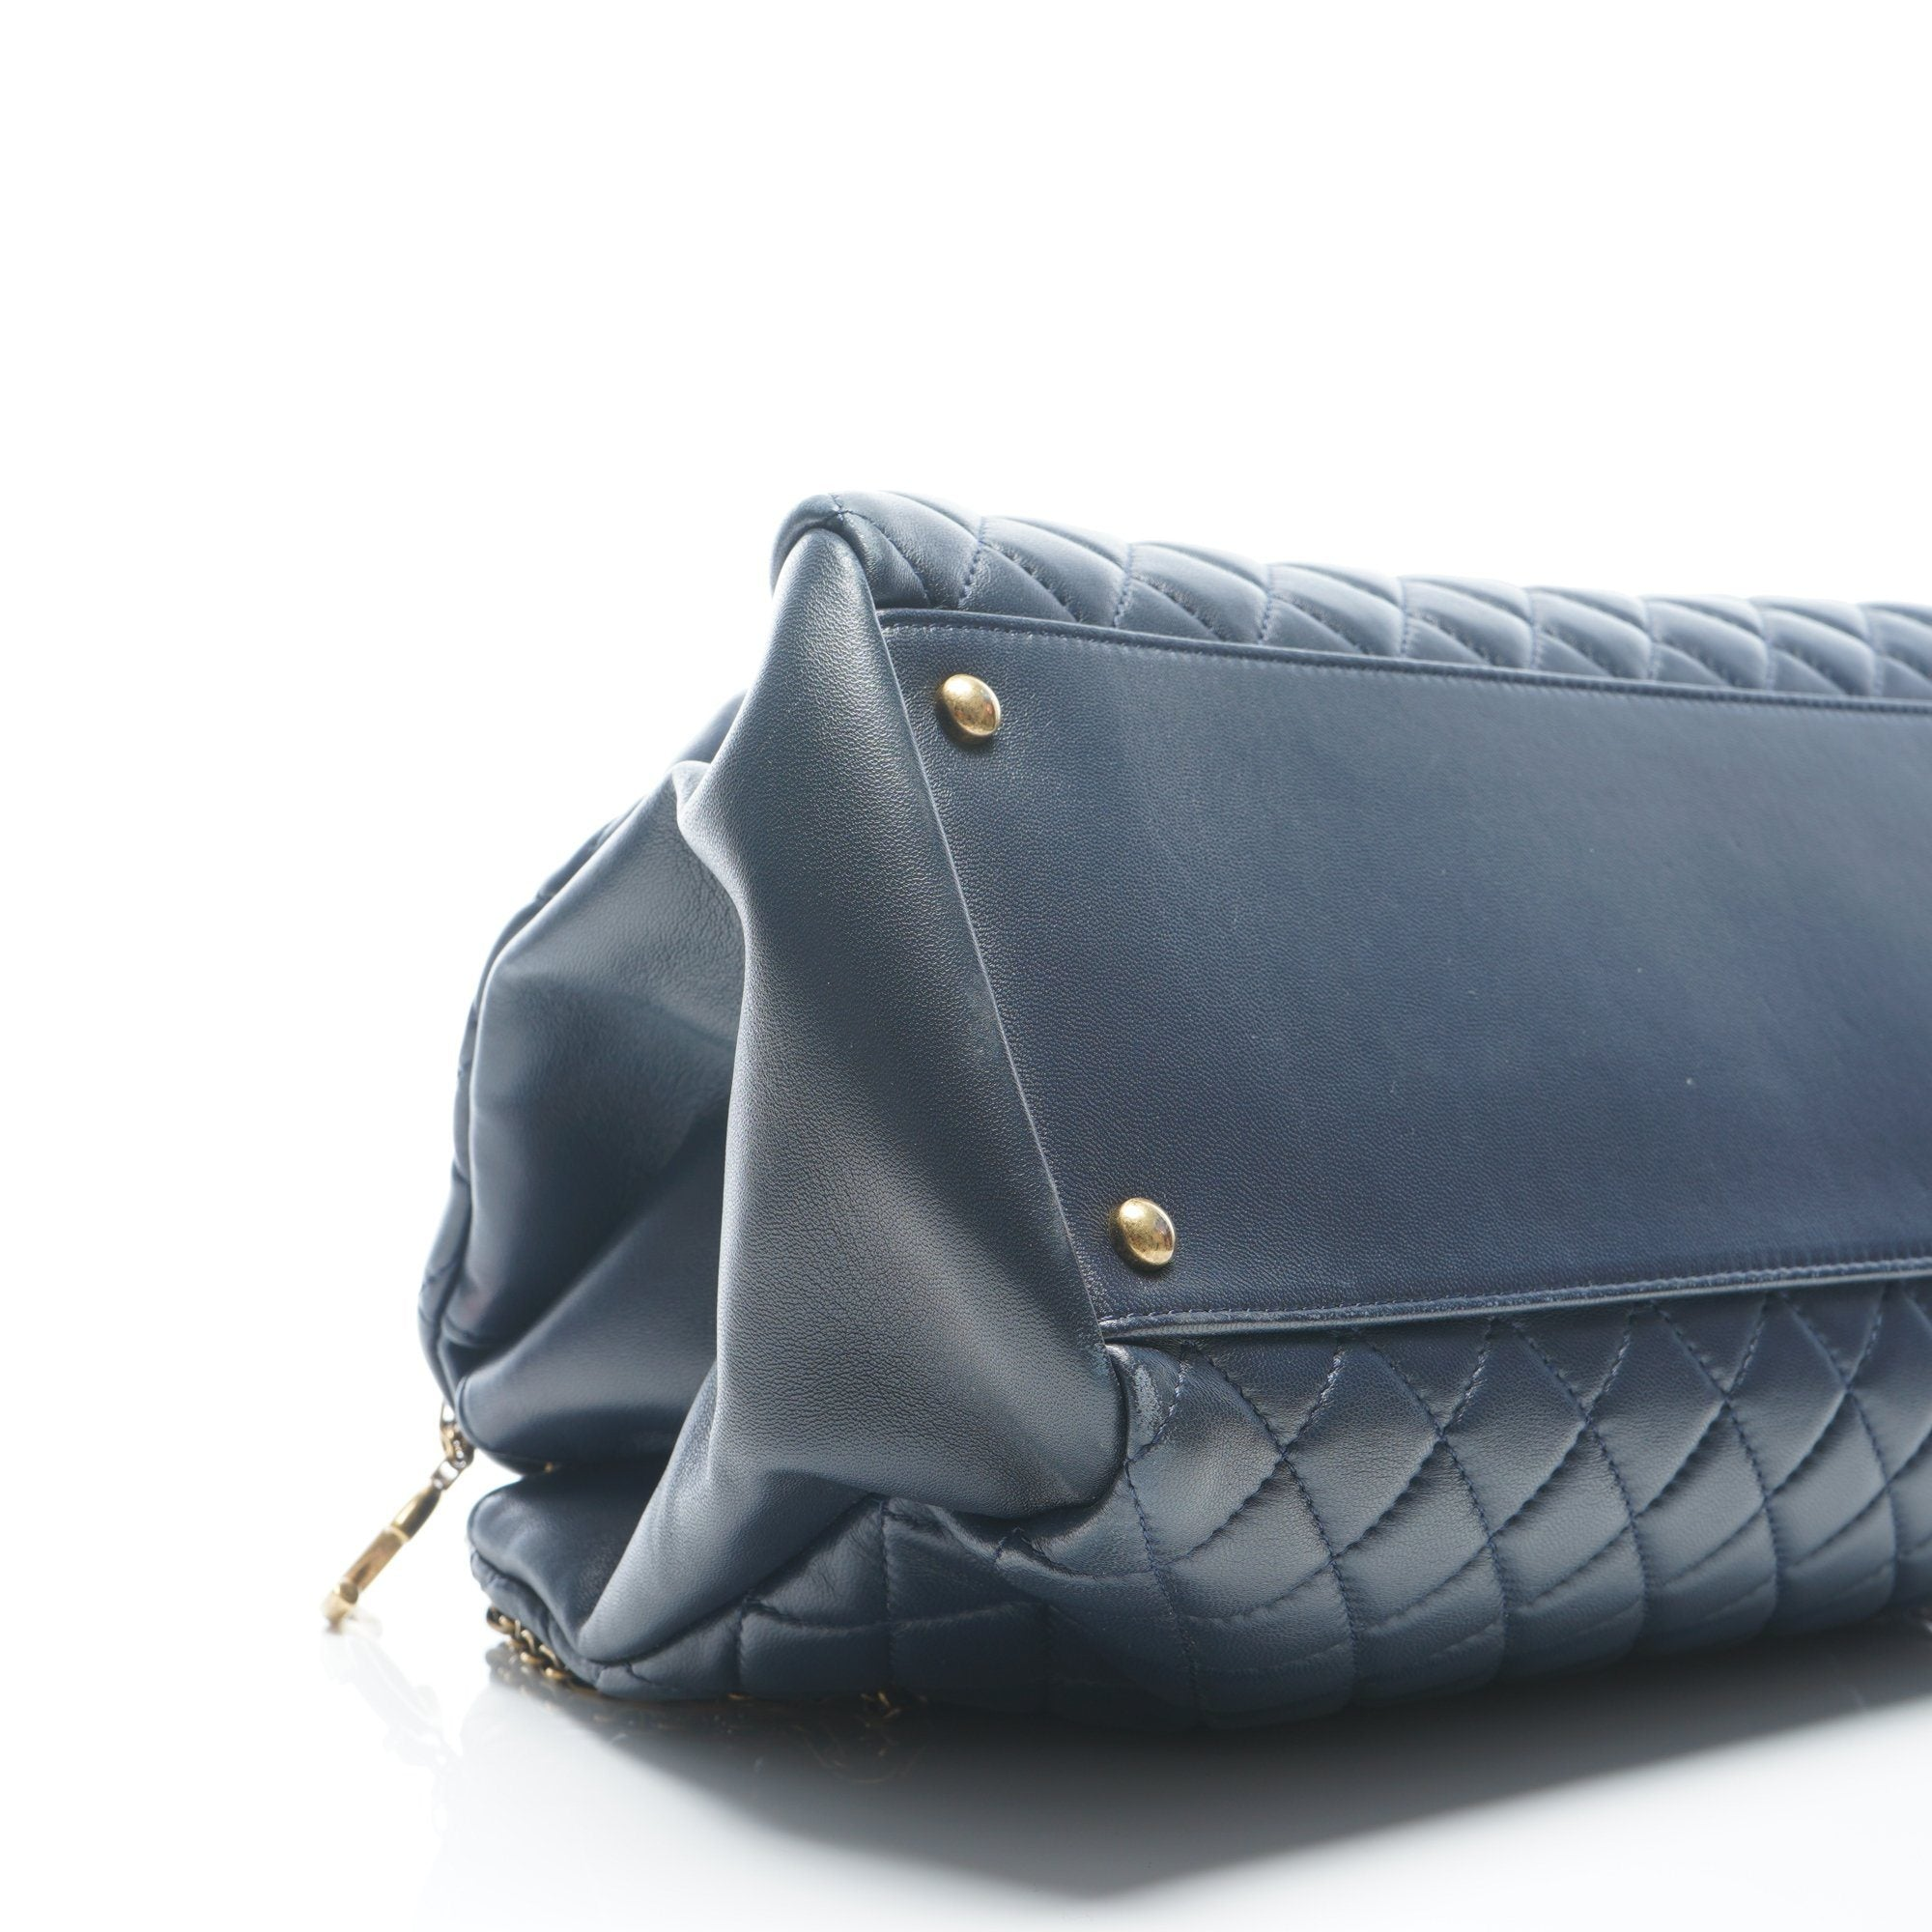 Chanel Blue Calfskin Large Quilted Mademoiselle Bag